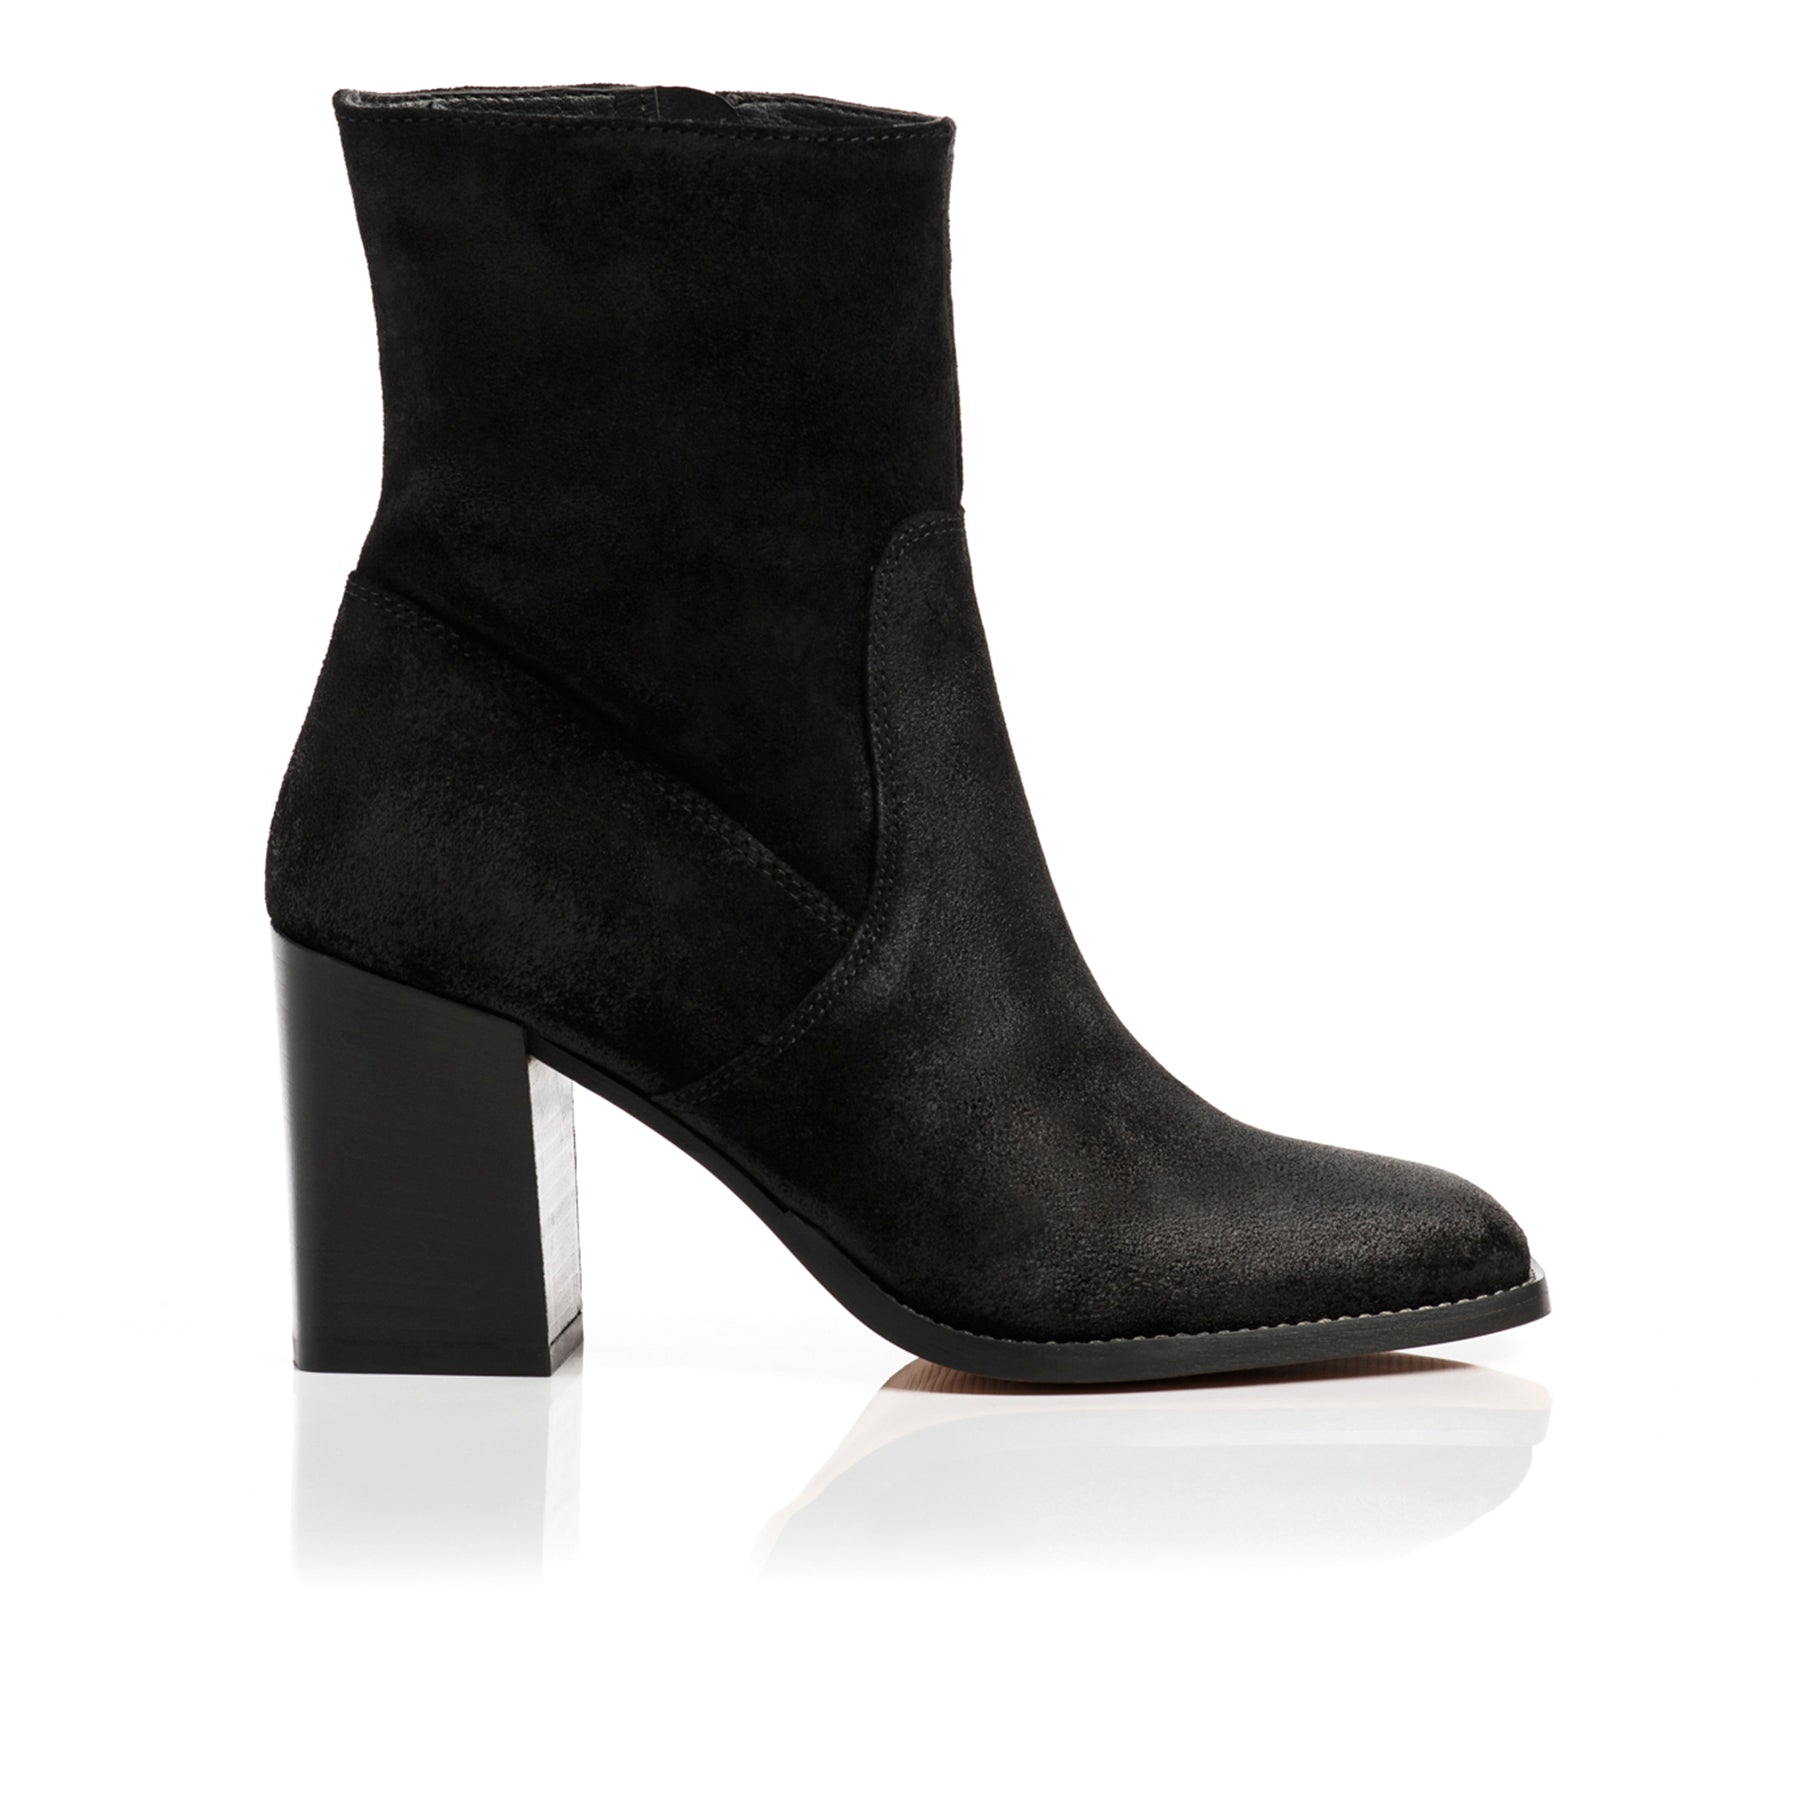 Nadine Black Suede Ankle Boots